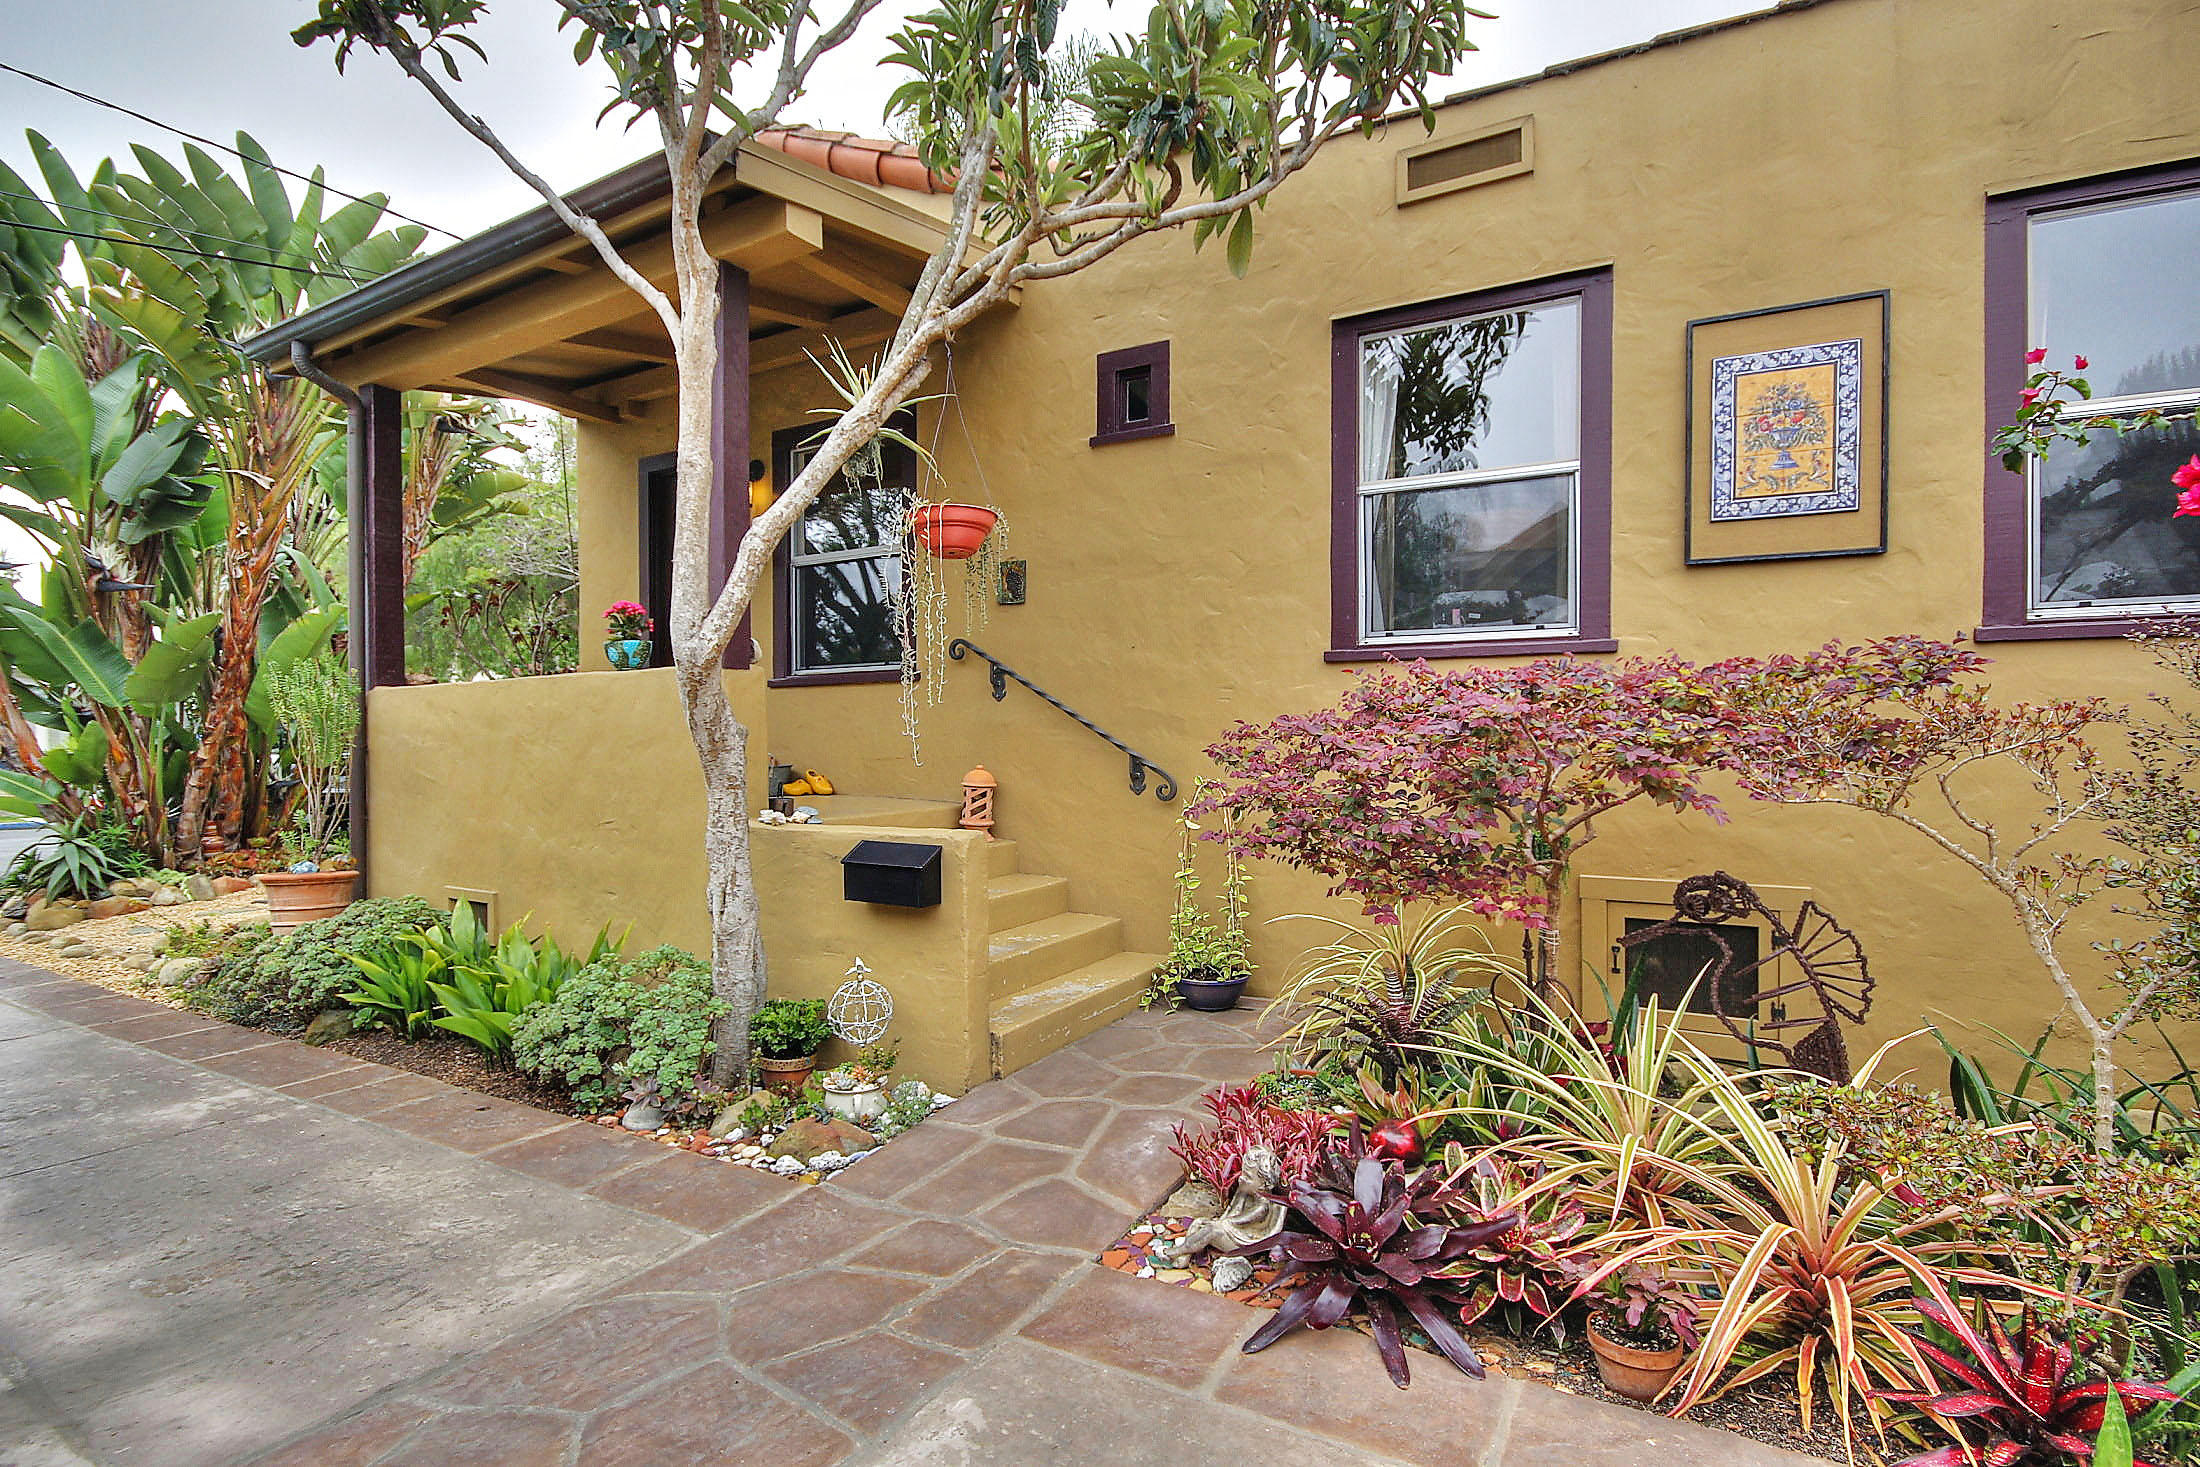 Property photo for 636 W Ortega St Santa Barbara, California 93101 - 15-2051